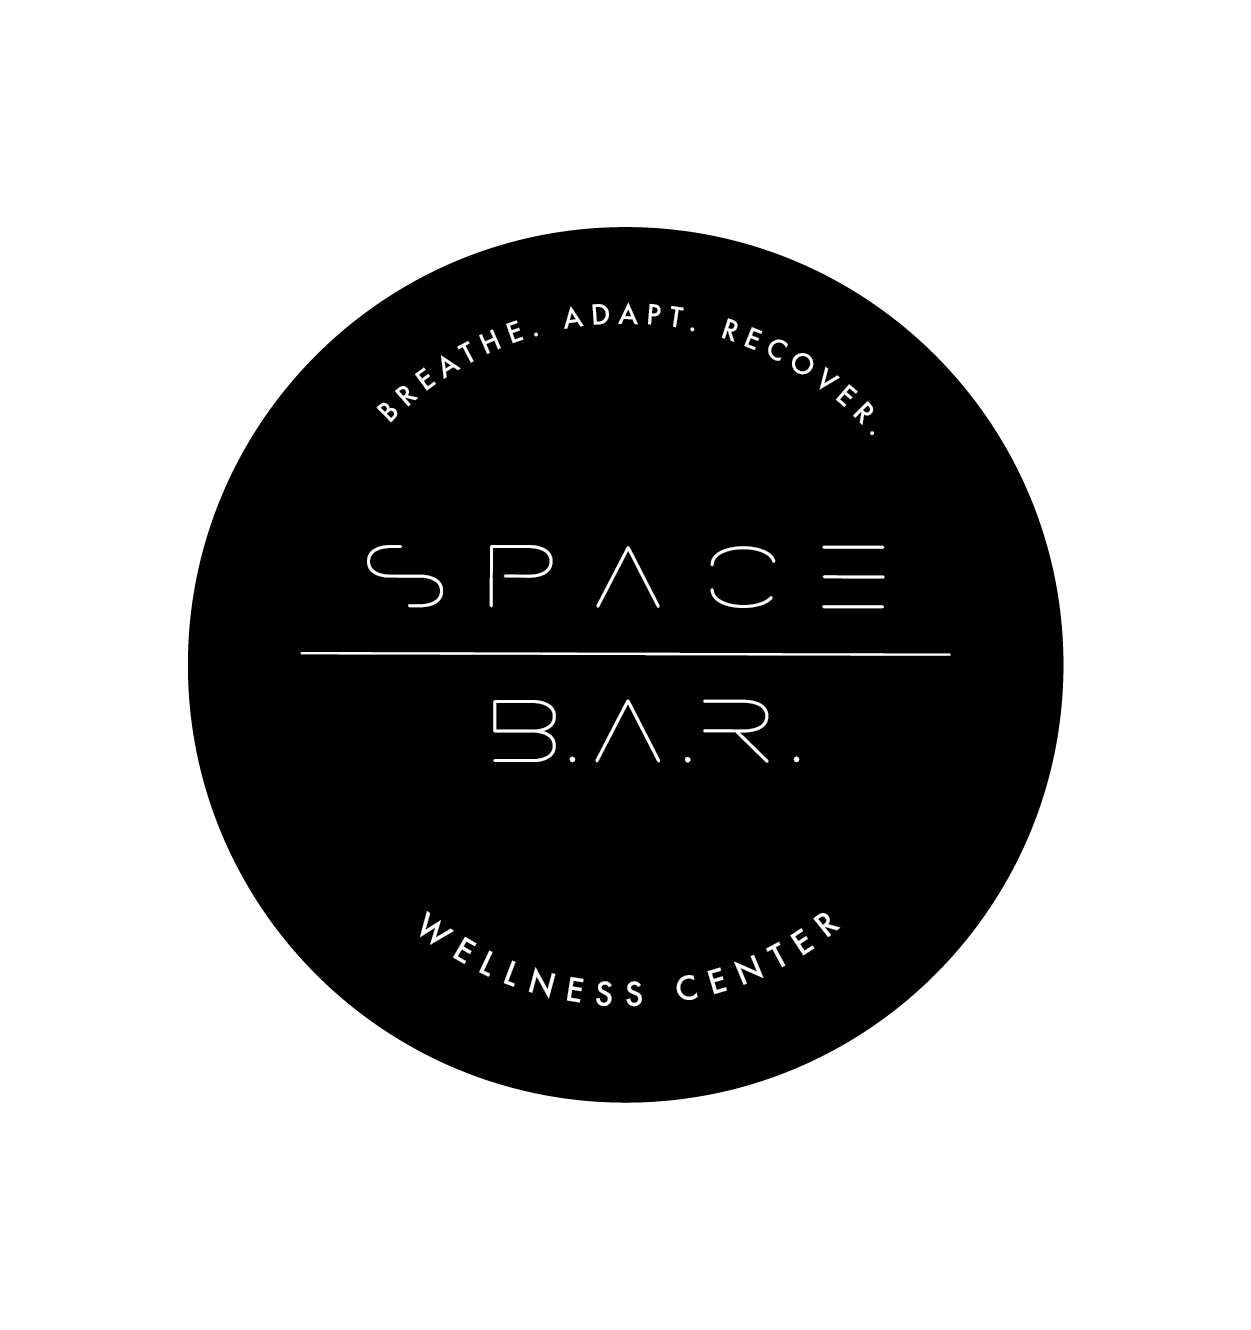 Space B.A.R. Logos-03.png